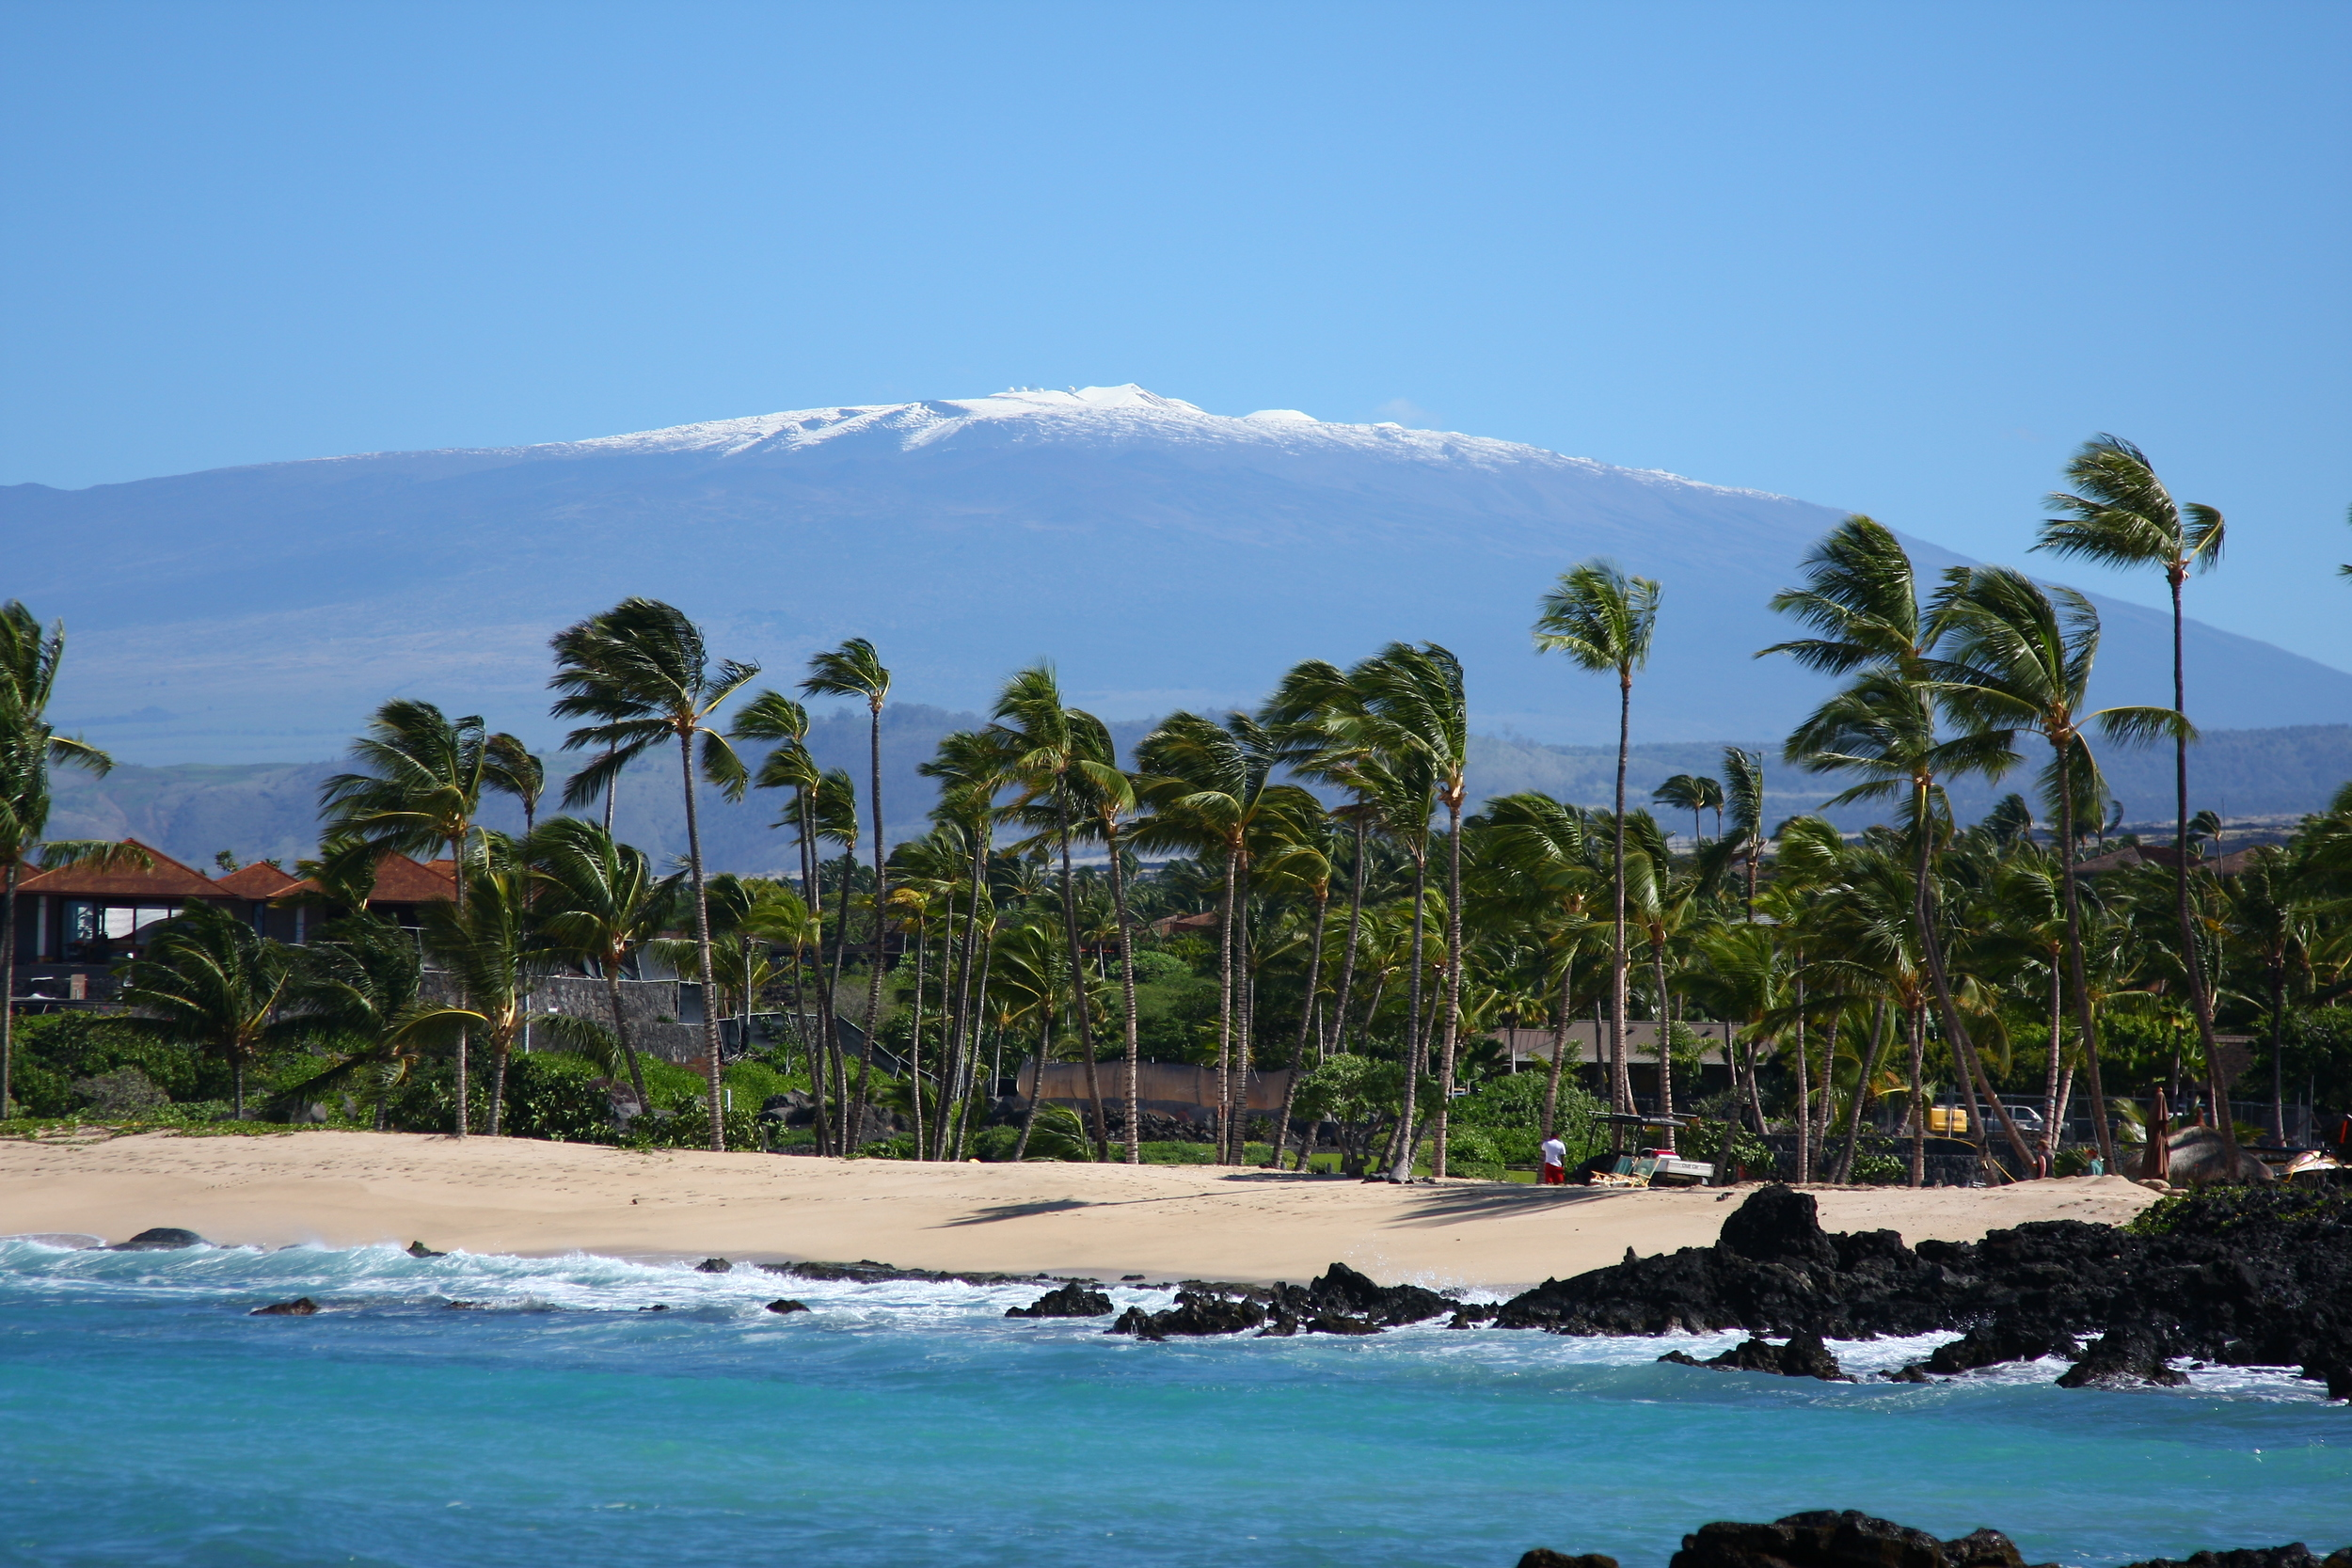 Snow on Mauna Kea from Kuhio Beach, Big Island